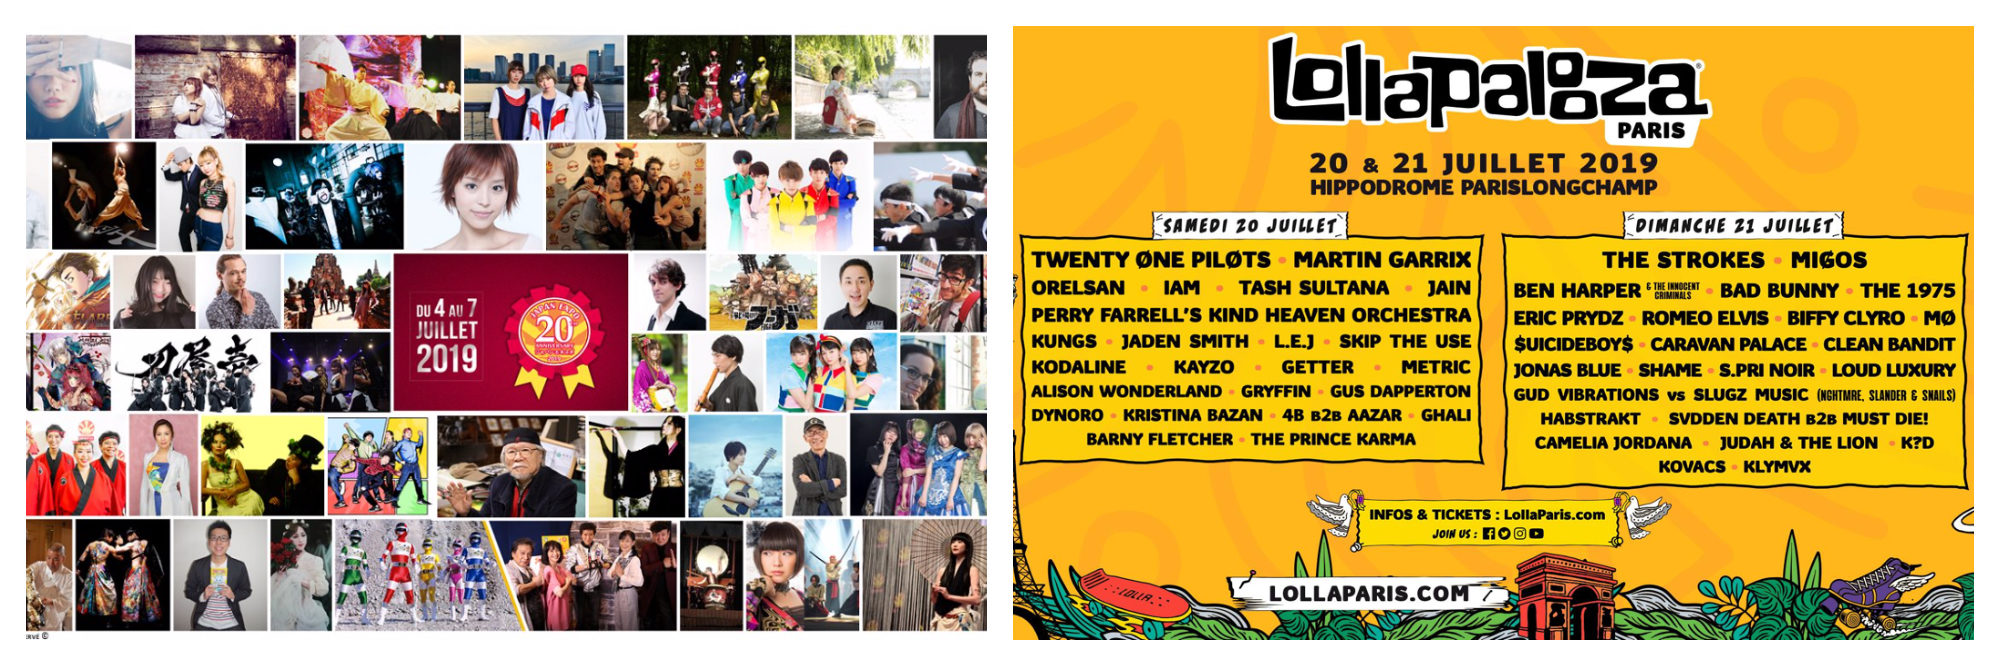 A poster for Japan Expo, a Japanese pop culture festival in Paris (left). A poster with the lineup for Lollapalooza music festival in Paris (right).